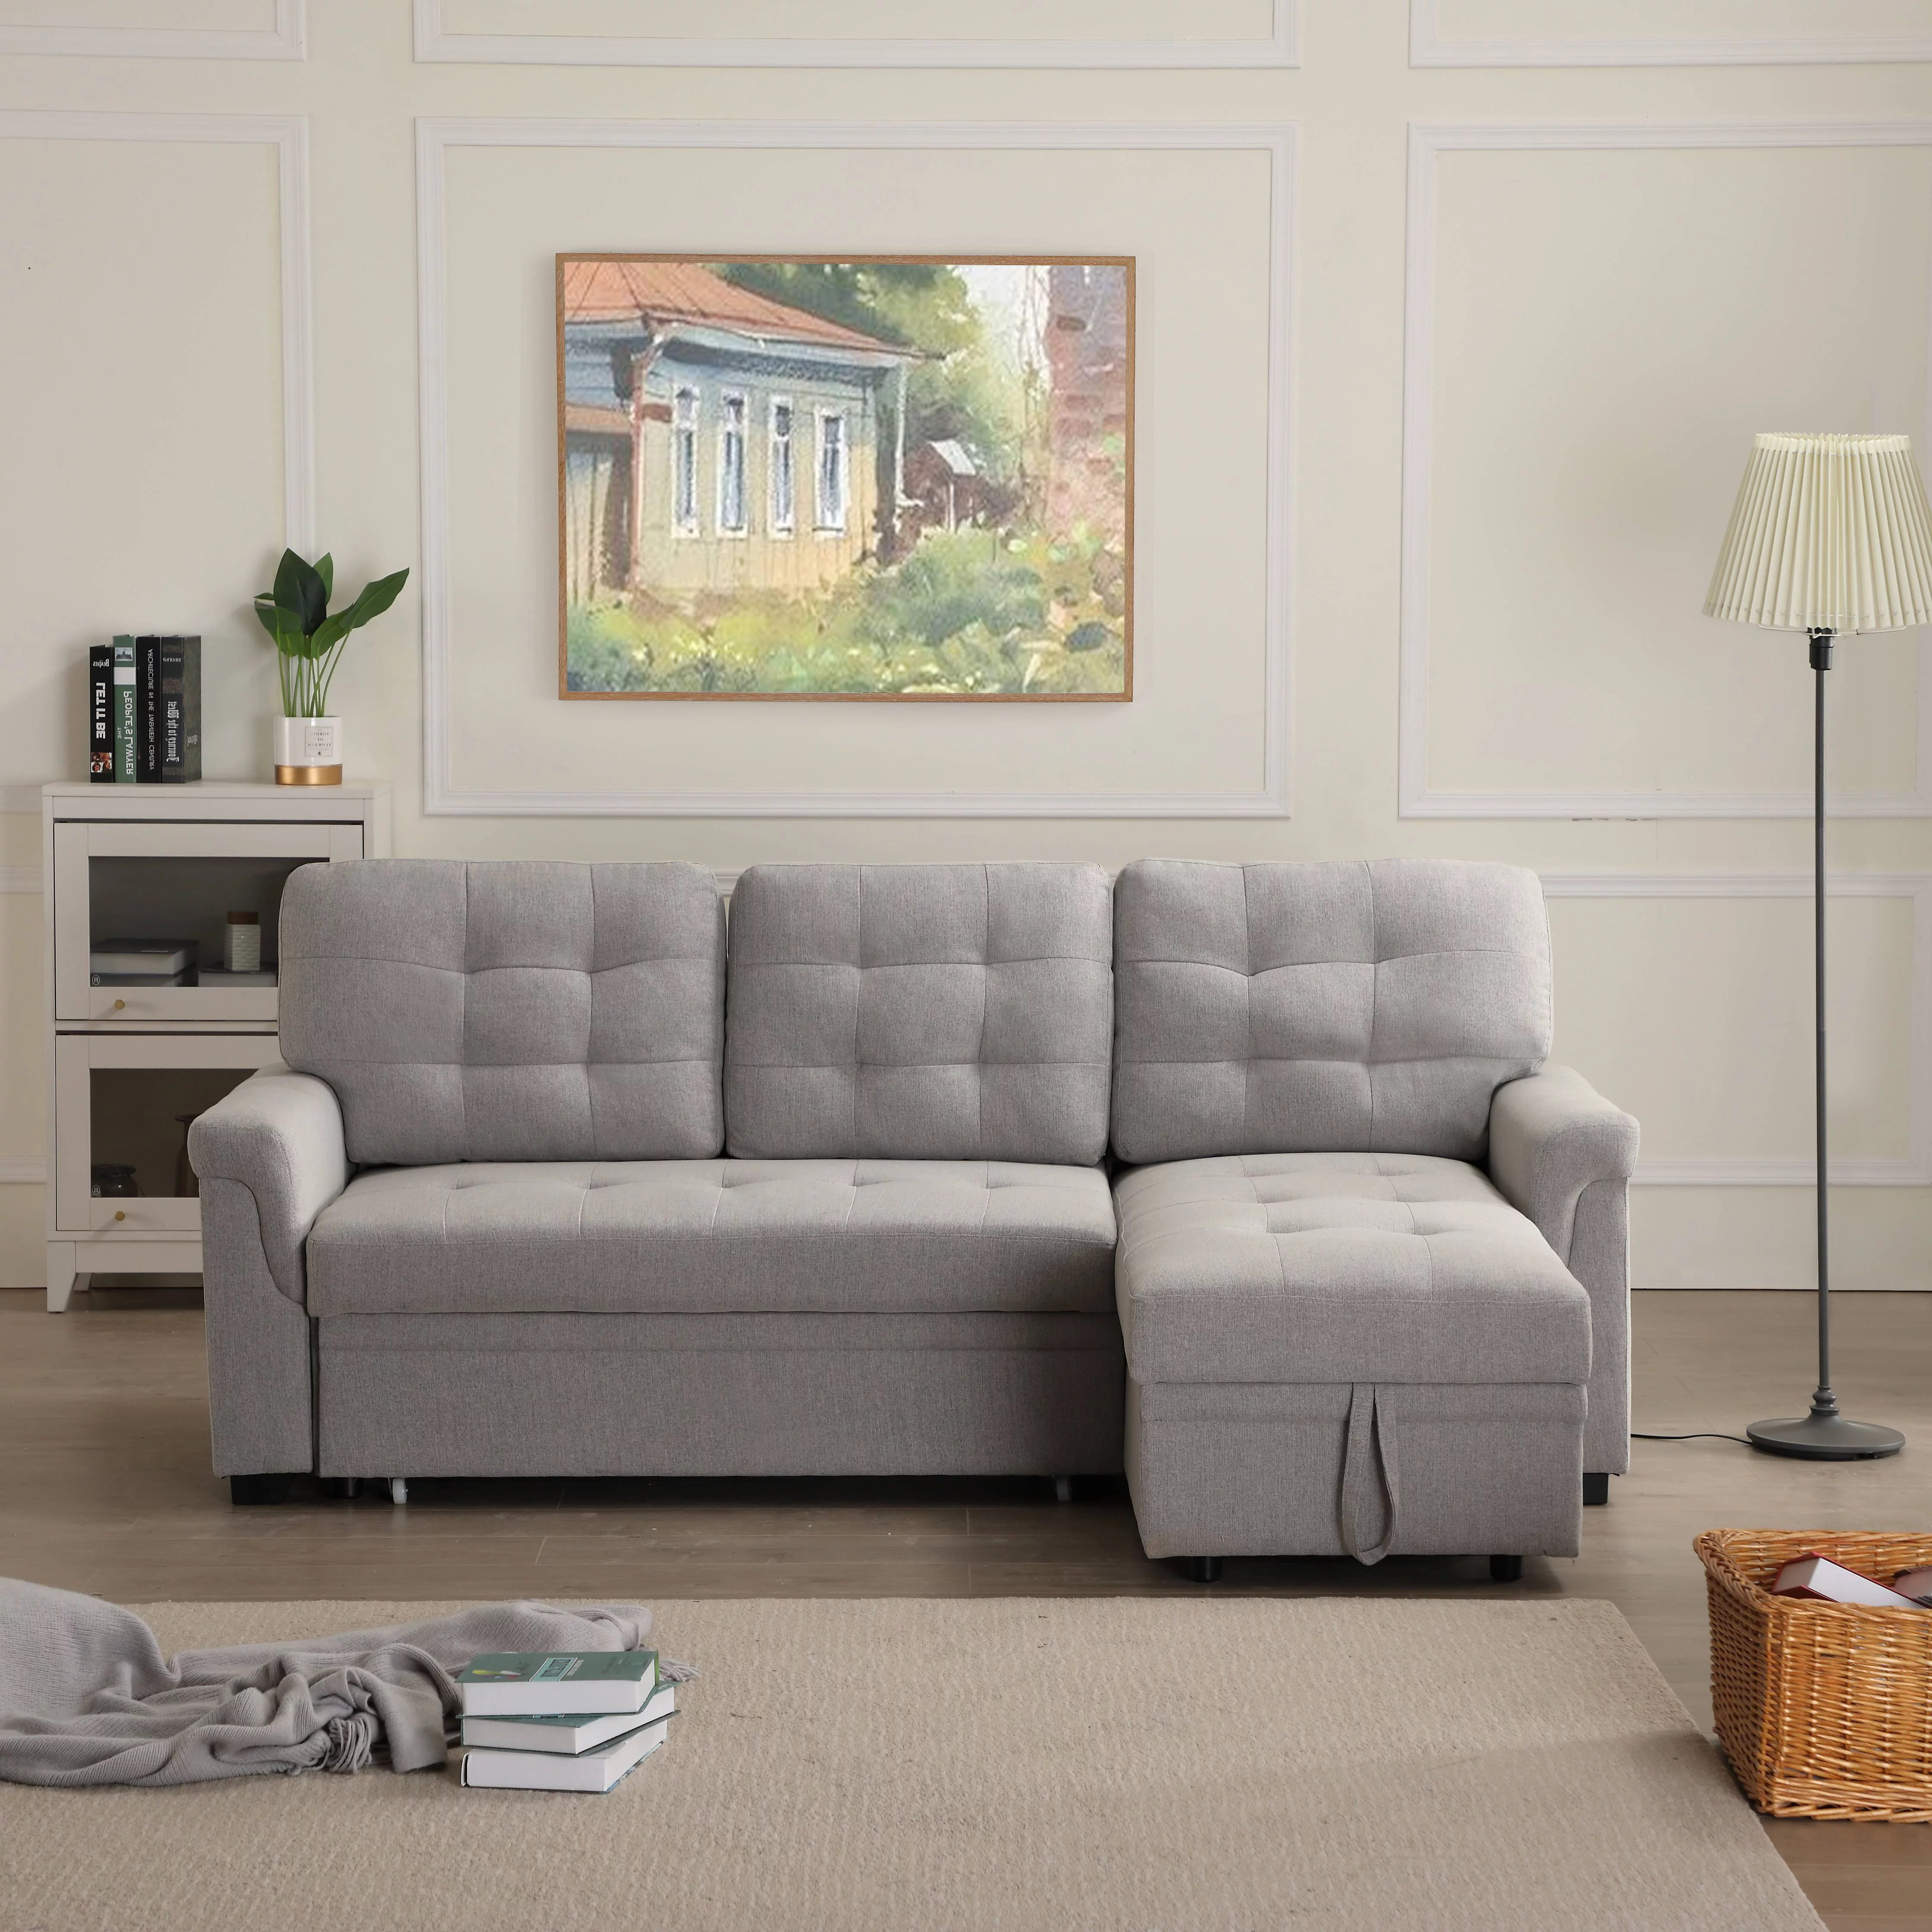 Segmart Mid Century Modern Sofa Bed With Fold Out Twin Size Sleeper And Solid Frame 33 X 86 X 54 5 Upholstery Fabric Sectional Sofas Sleeper Bed With Solid Wood Frame 500lbs Grey S1749